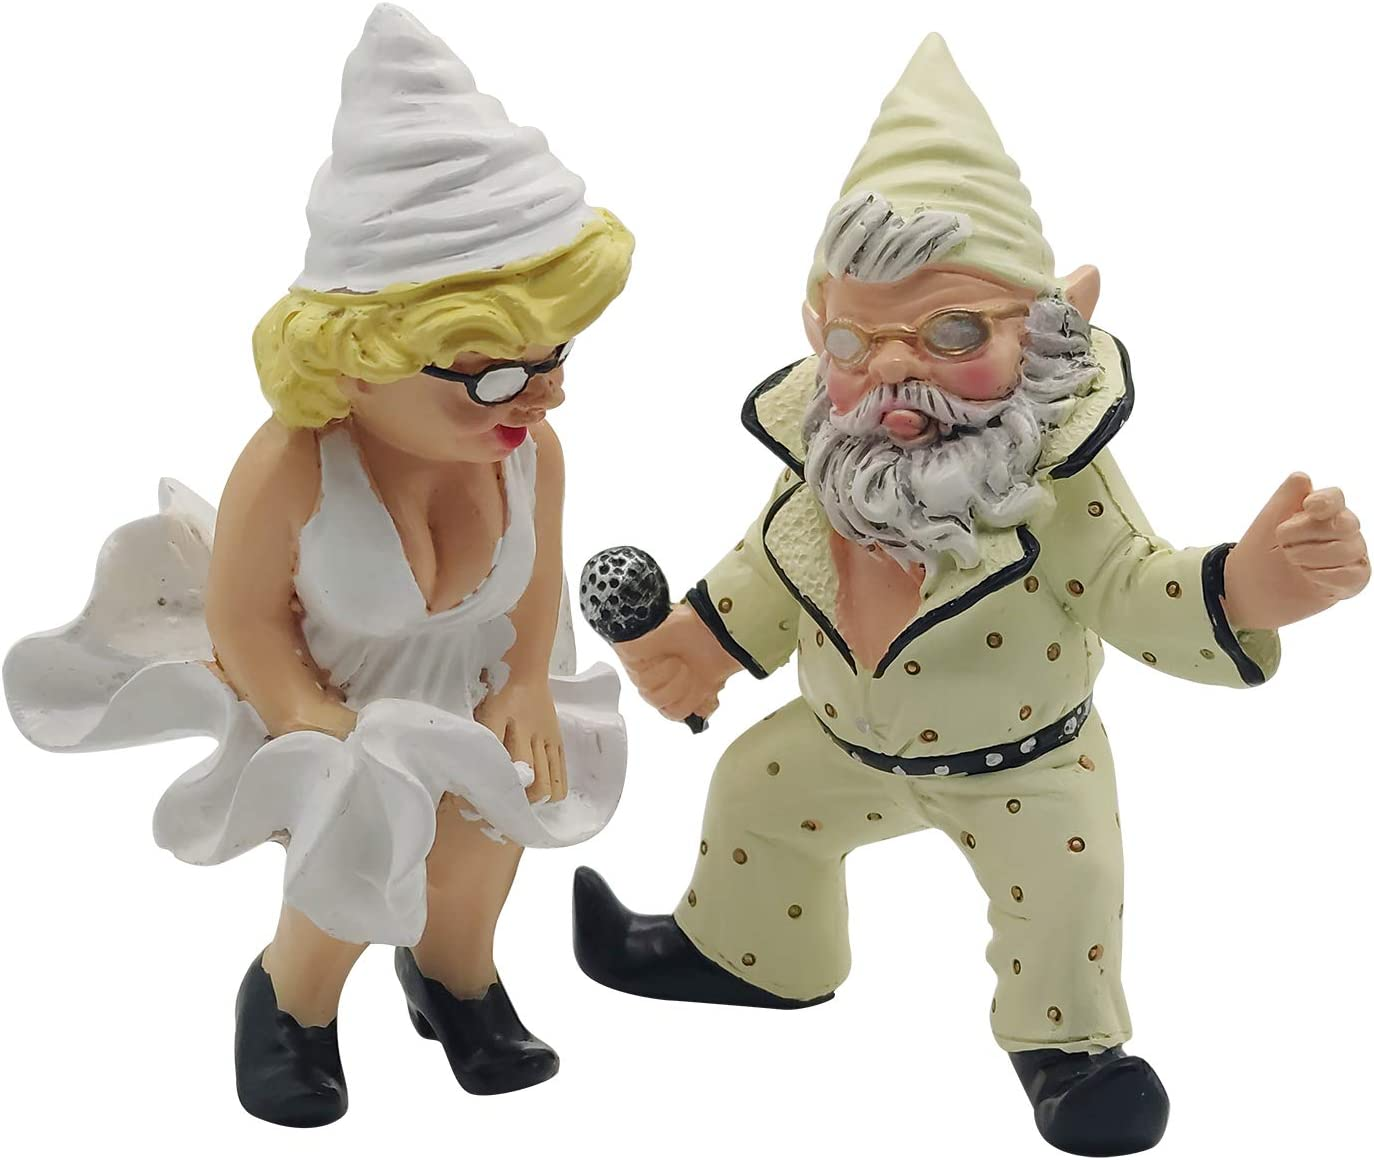 Funny Party Garden Gnome,Garden Gnome Couple in Carnival,Outdoor Lawn Decorations,Gnome Statue for Patio and Yard,Friends Lovers Romantic Statue.